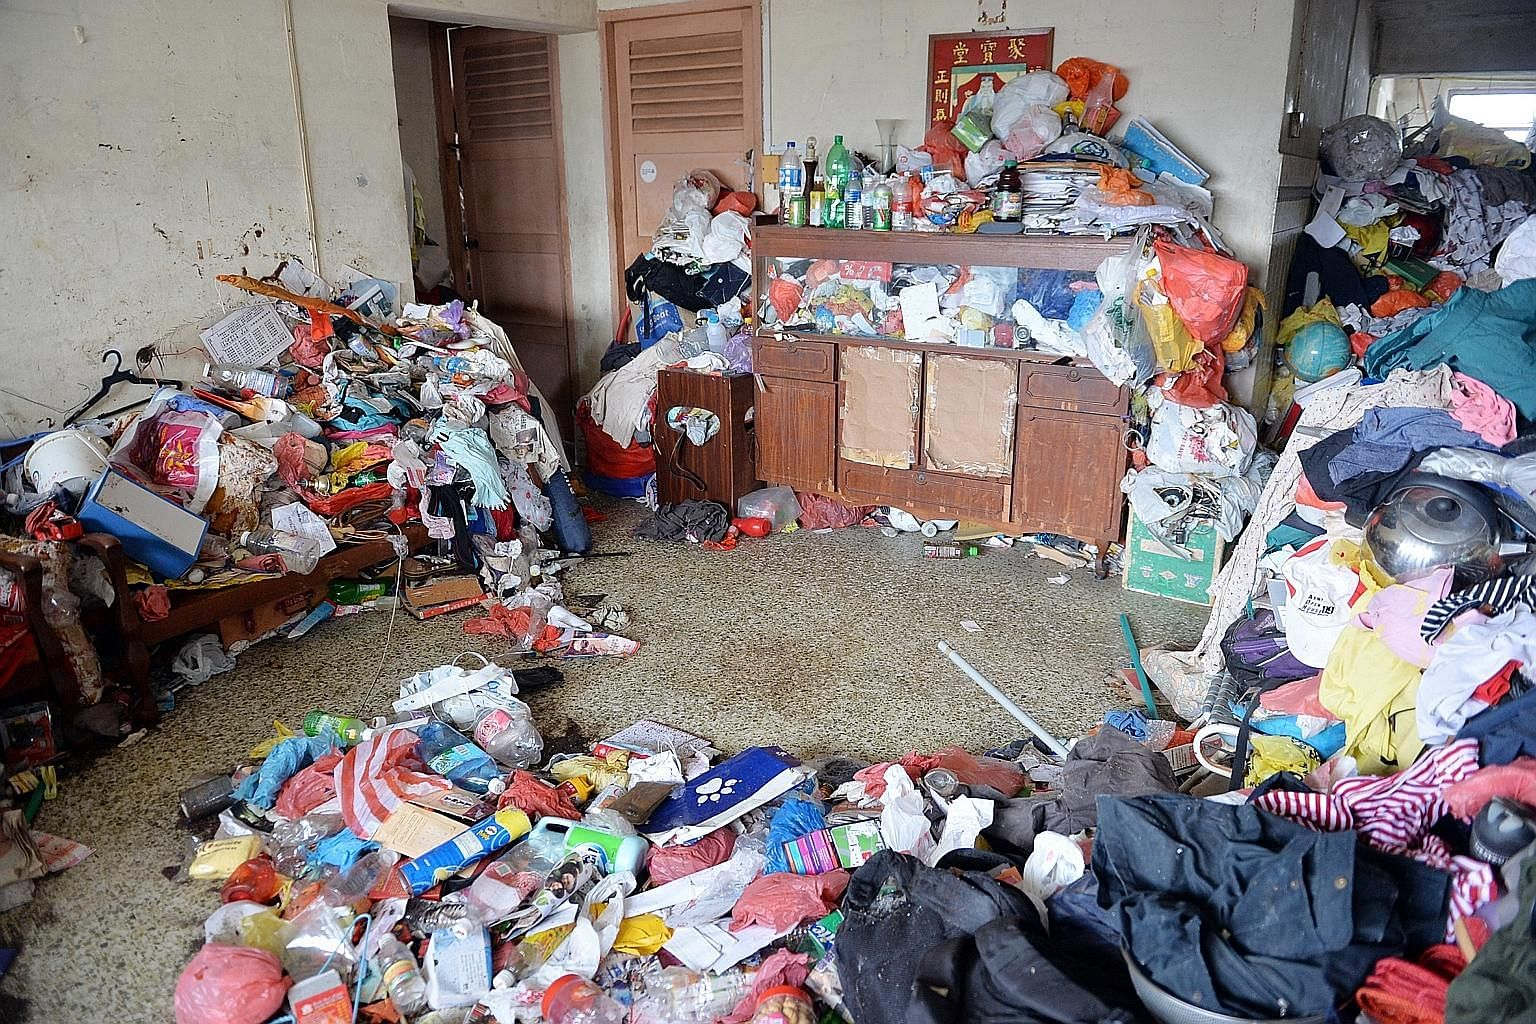 Those who hoard have difficulty discarding their possessions, or have strong urges to save them, which may result in the person's home becoming so cluttered that living space becomes a hygiene and fire hazard.